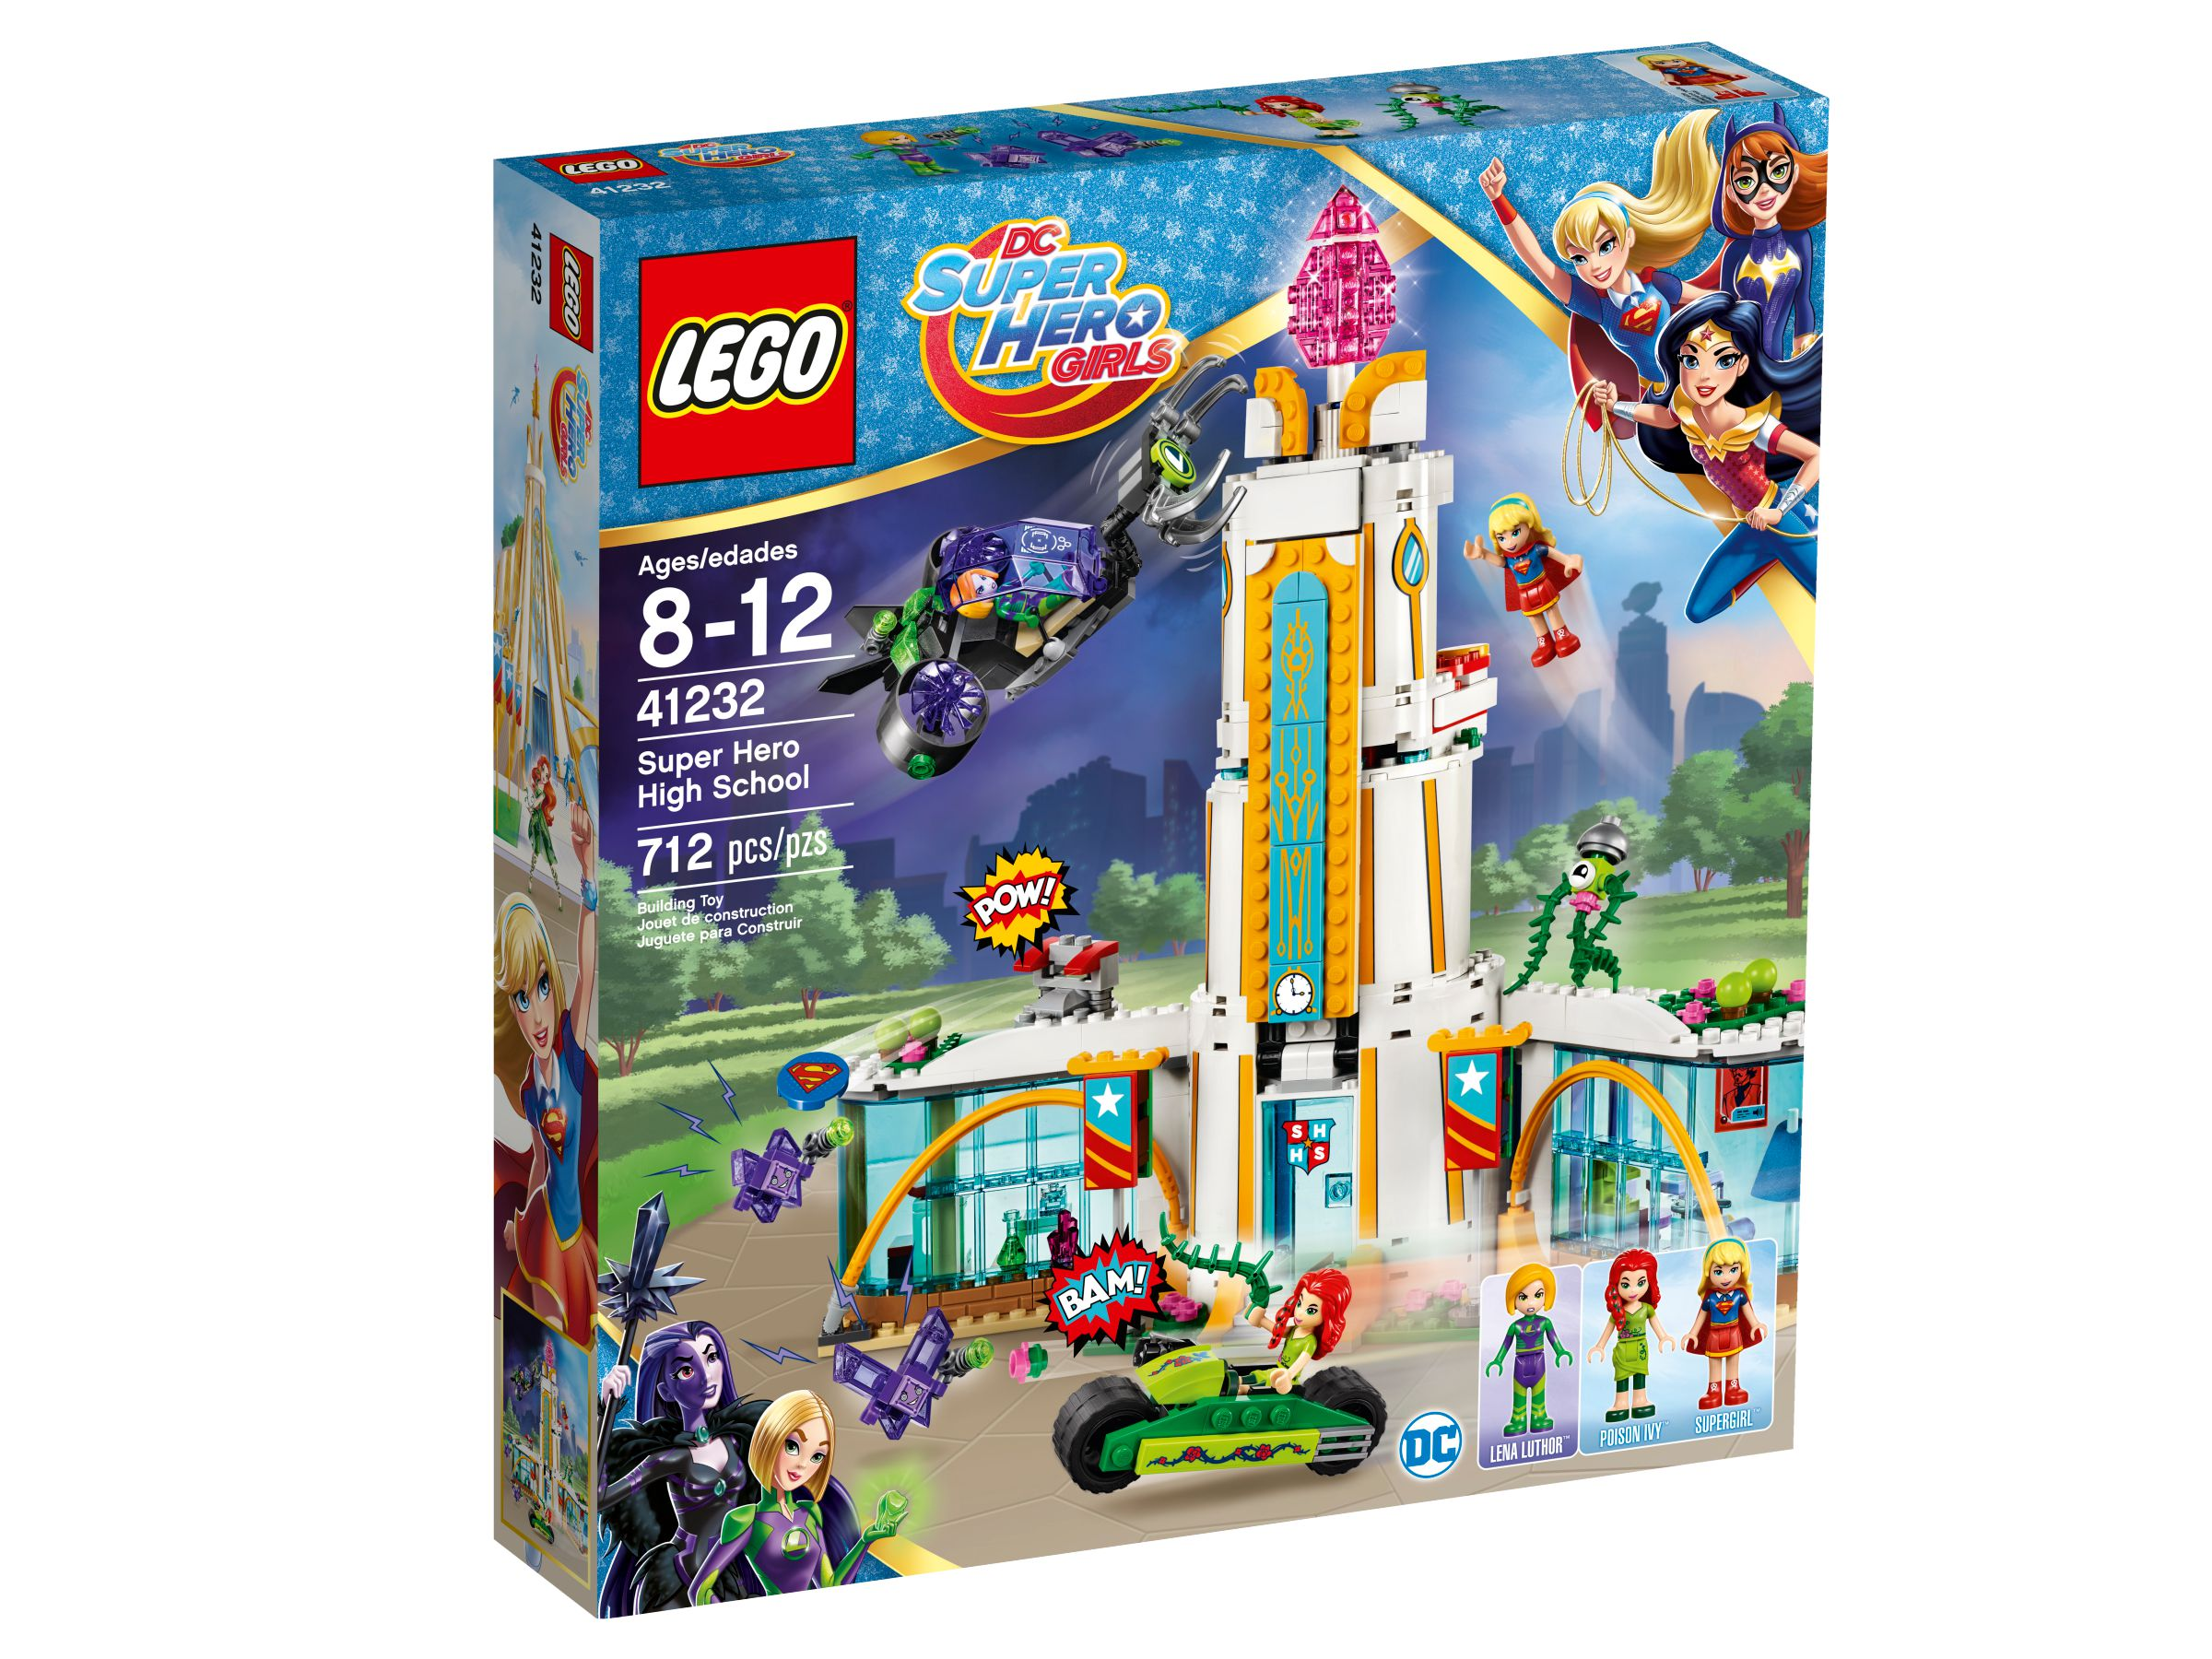 LEGO DC Super Hero Girls 41232 Highschool der Super Heroes LEGO_41232_alt1.jpg